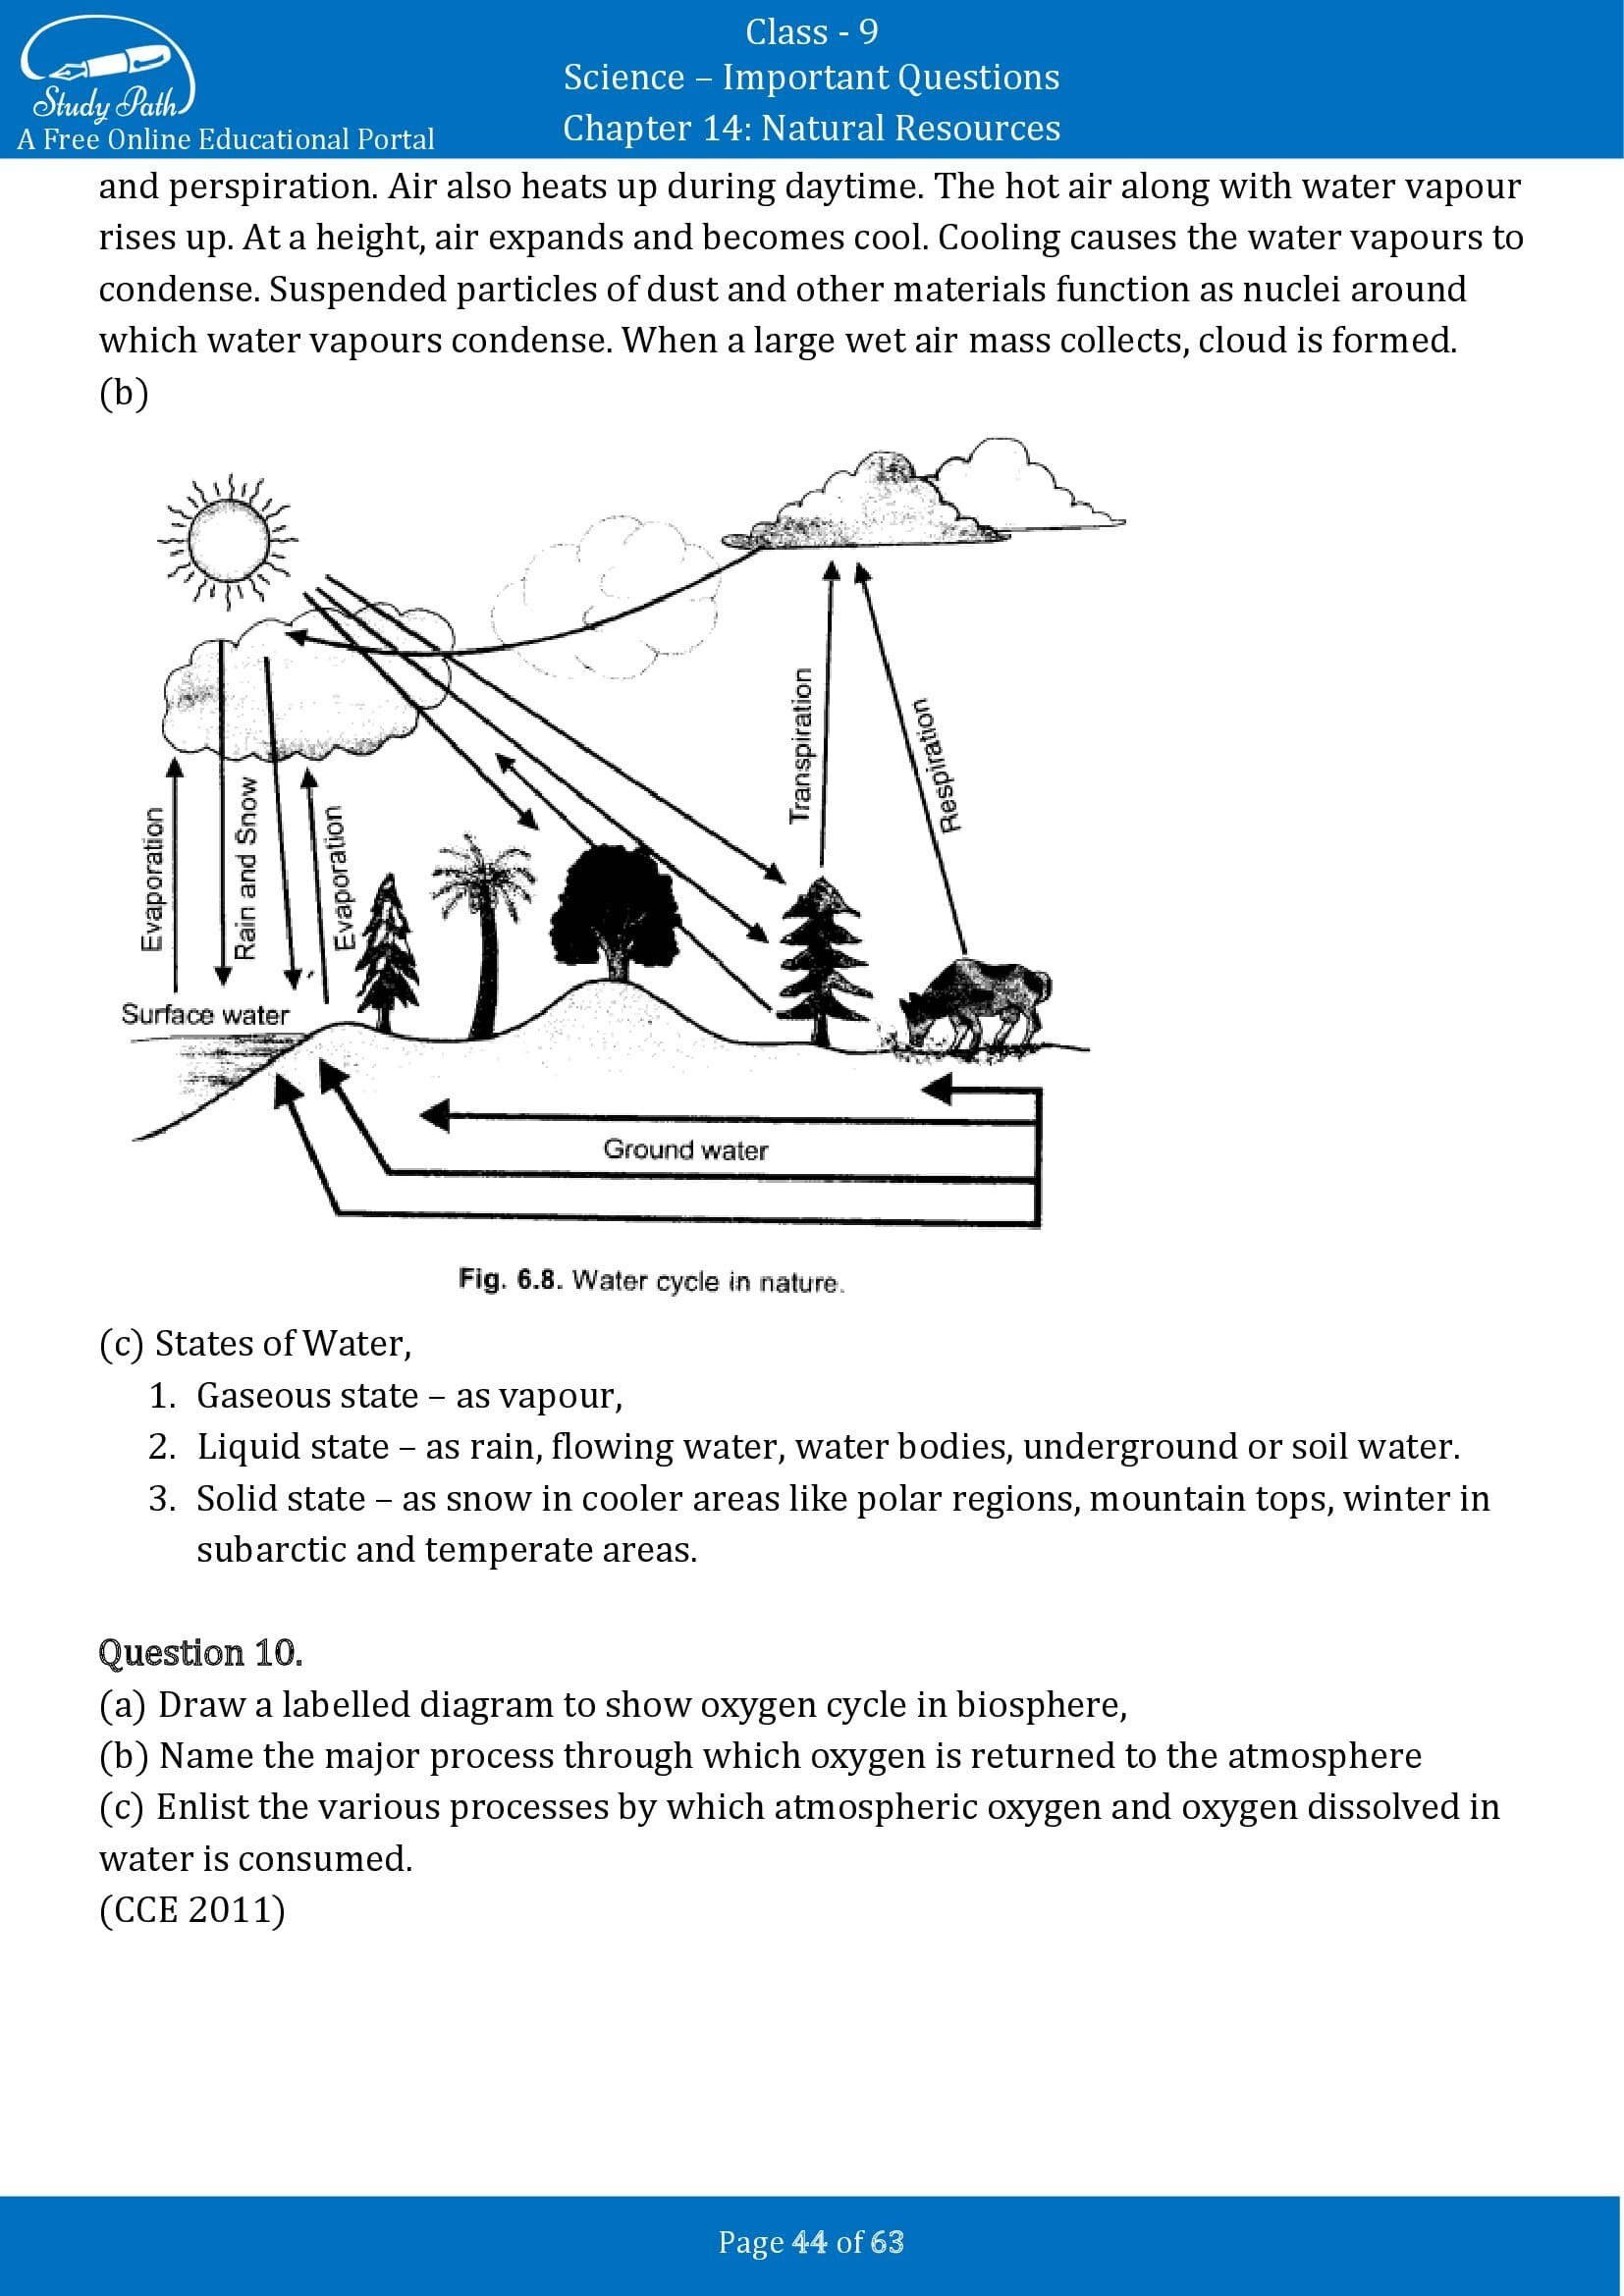 Important Questions for Class 9 Science Chapter 14 Natural Resources 00044